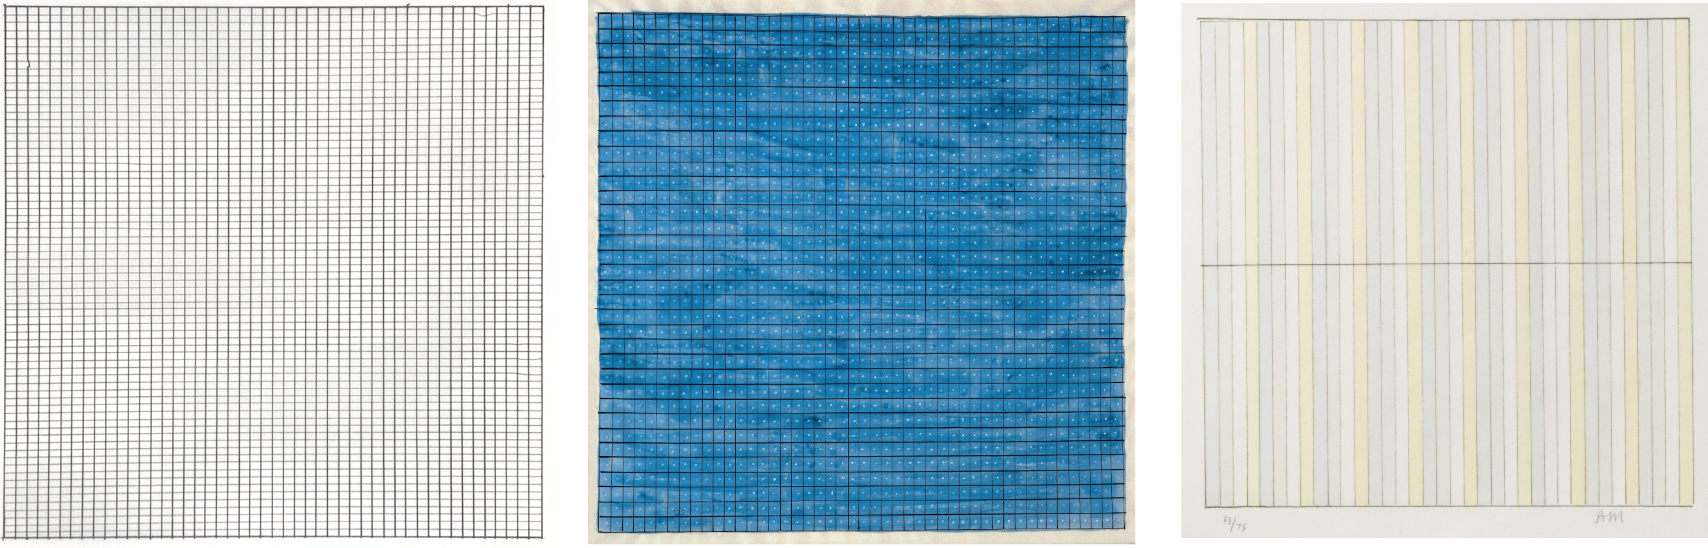 Examples of abstract paintings by Agnes Martin